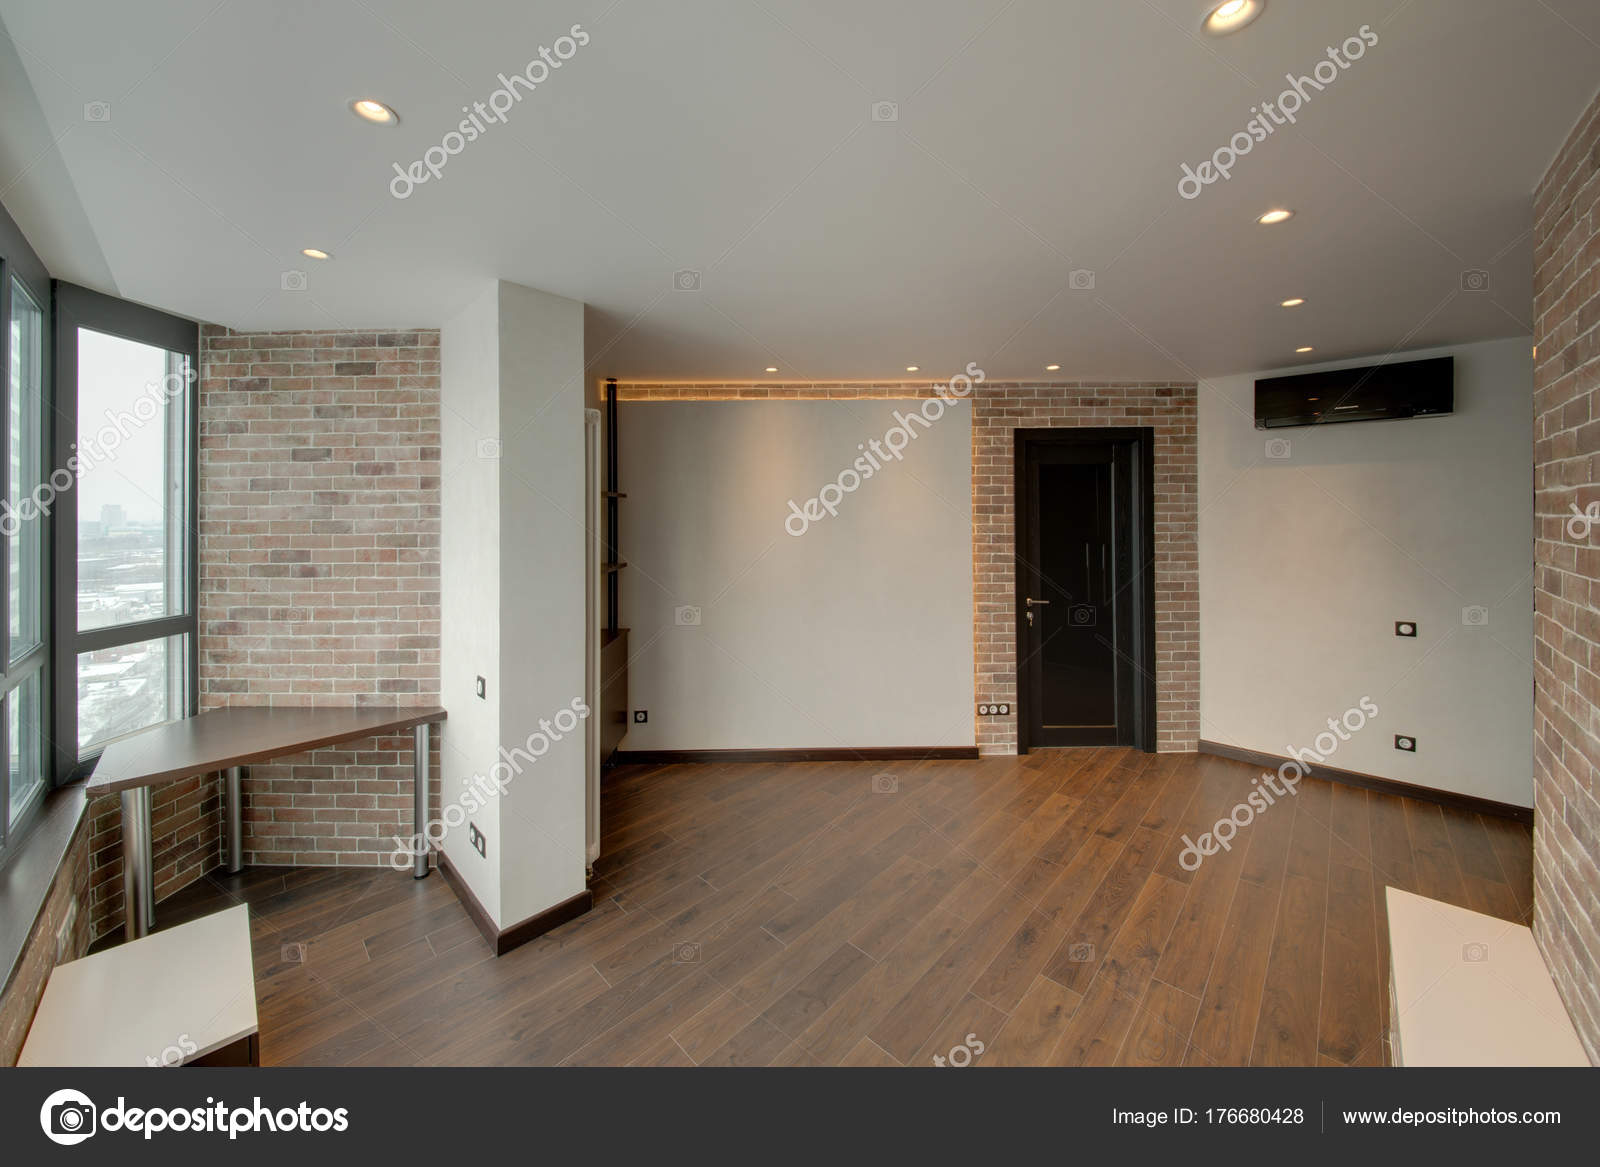 Room Combined Red Brick White Walls Dark Doors Dark Floor u2014 Stock Photo & Room Combined Red Brick White Walls Dark Doors Dark Floor u2014 Stock ...